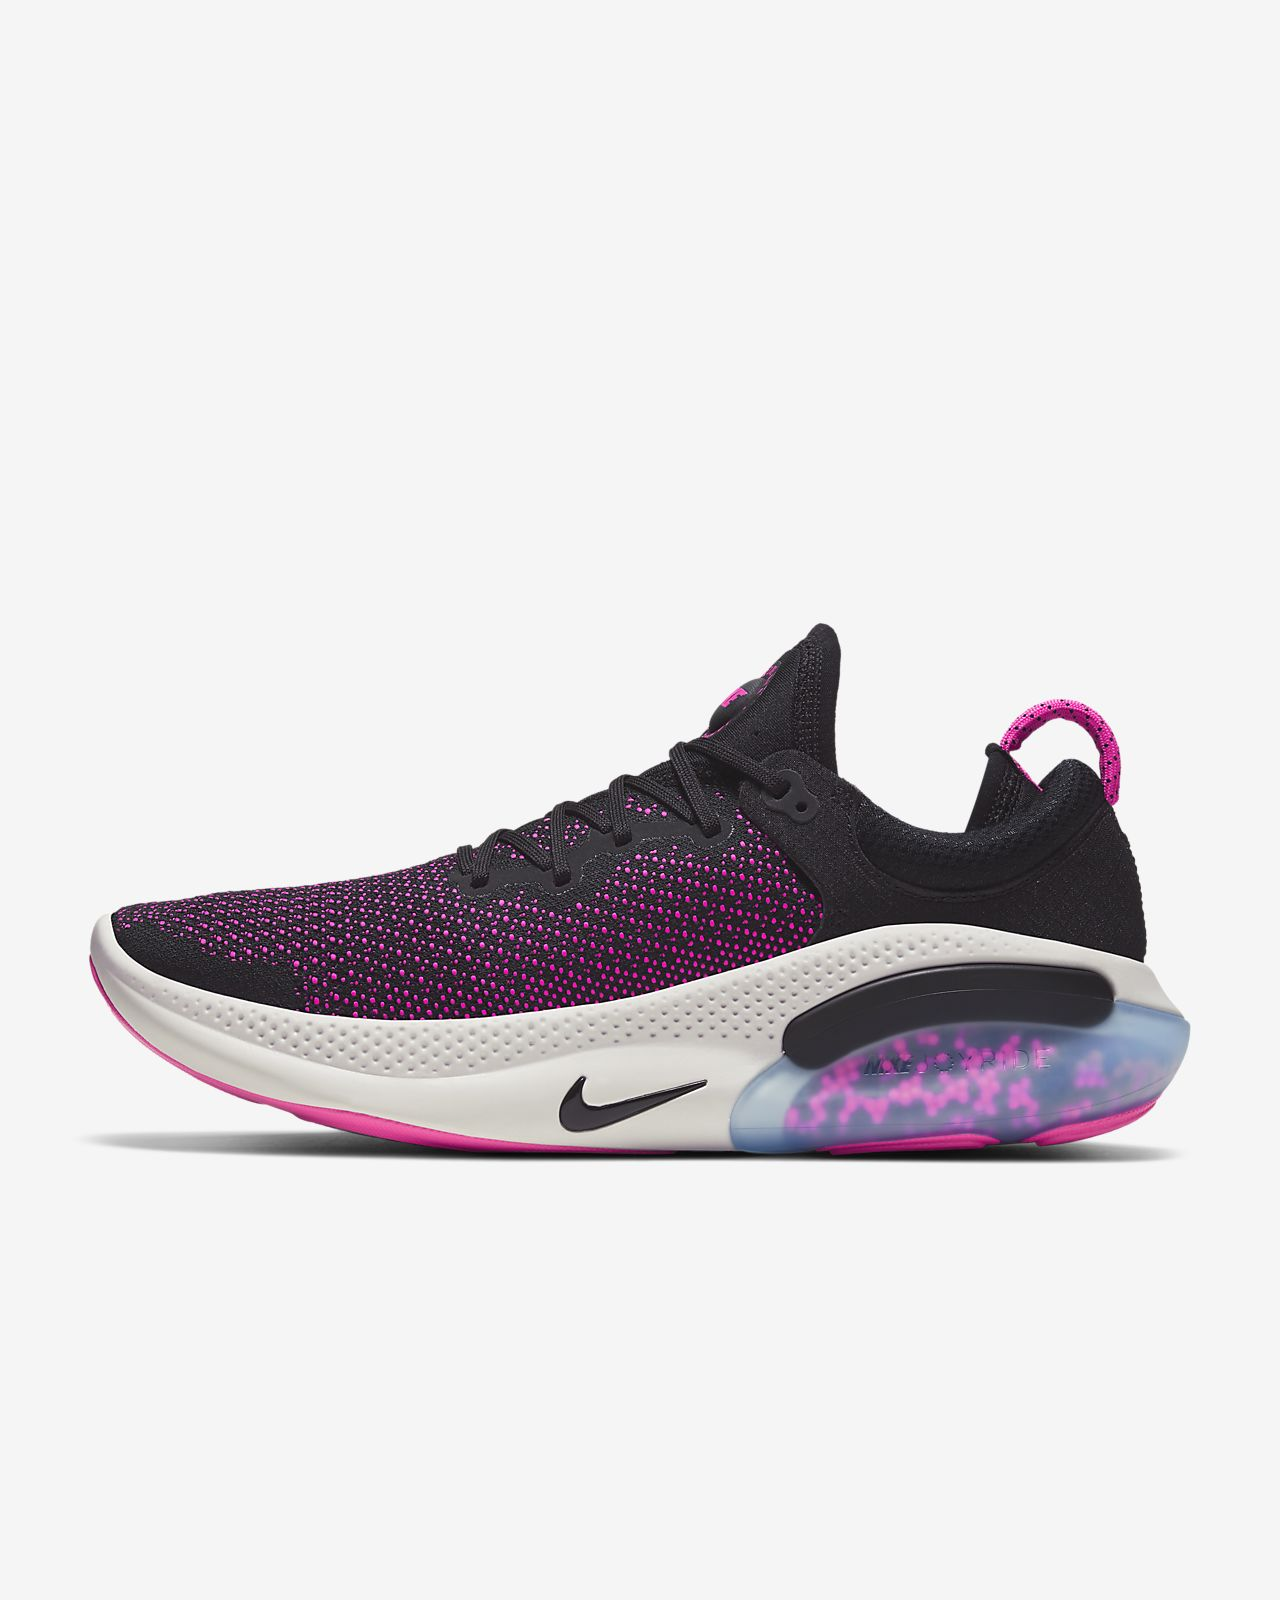 Nike Joyride Run Flyknit Men's Running Shoe